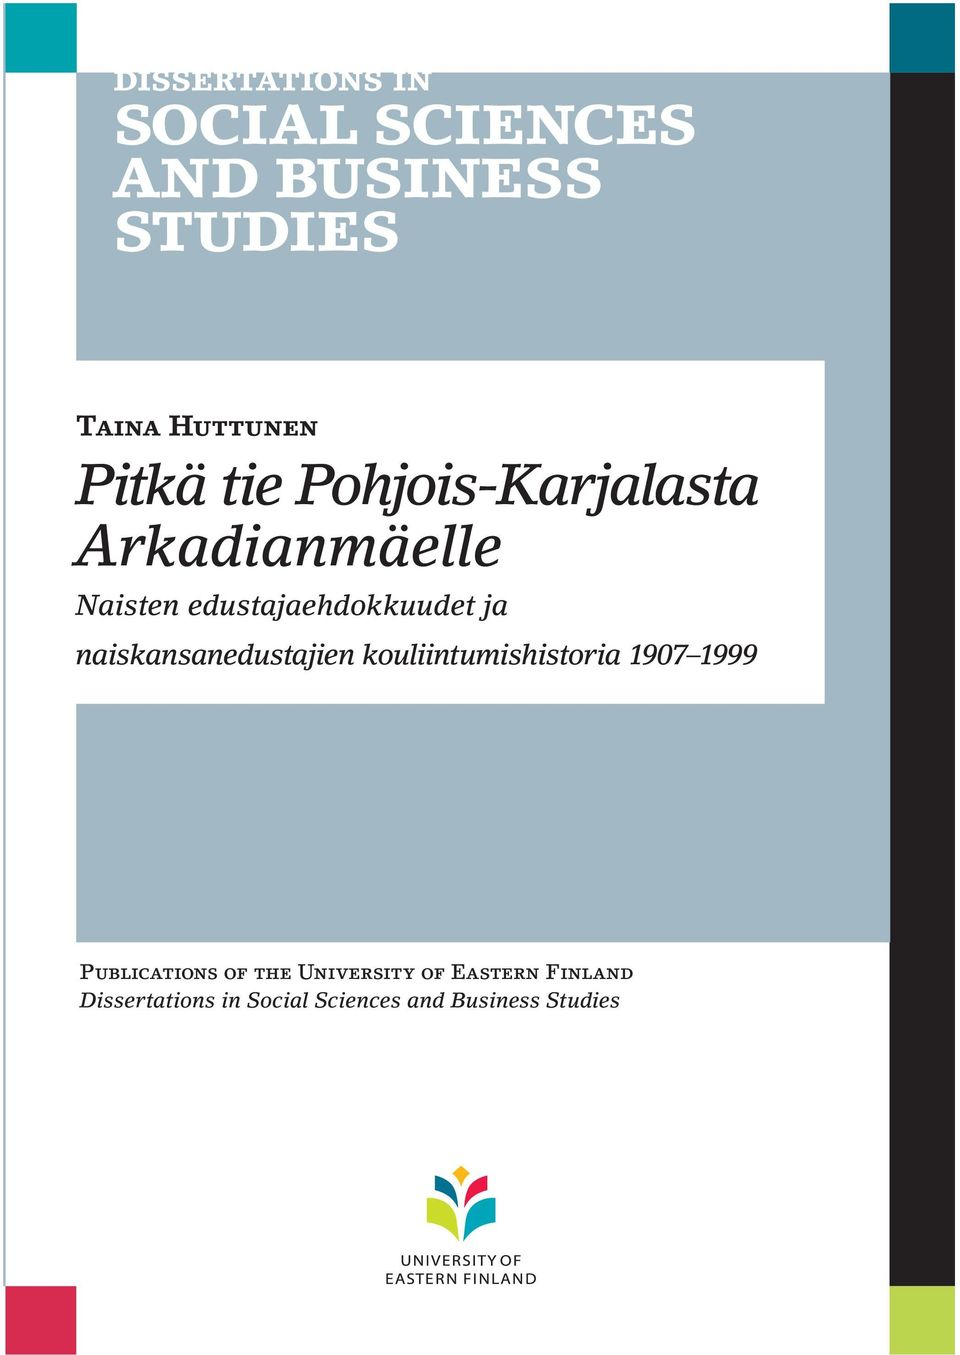 kouliintumishistoria 1907 1999 Publications of the University